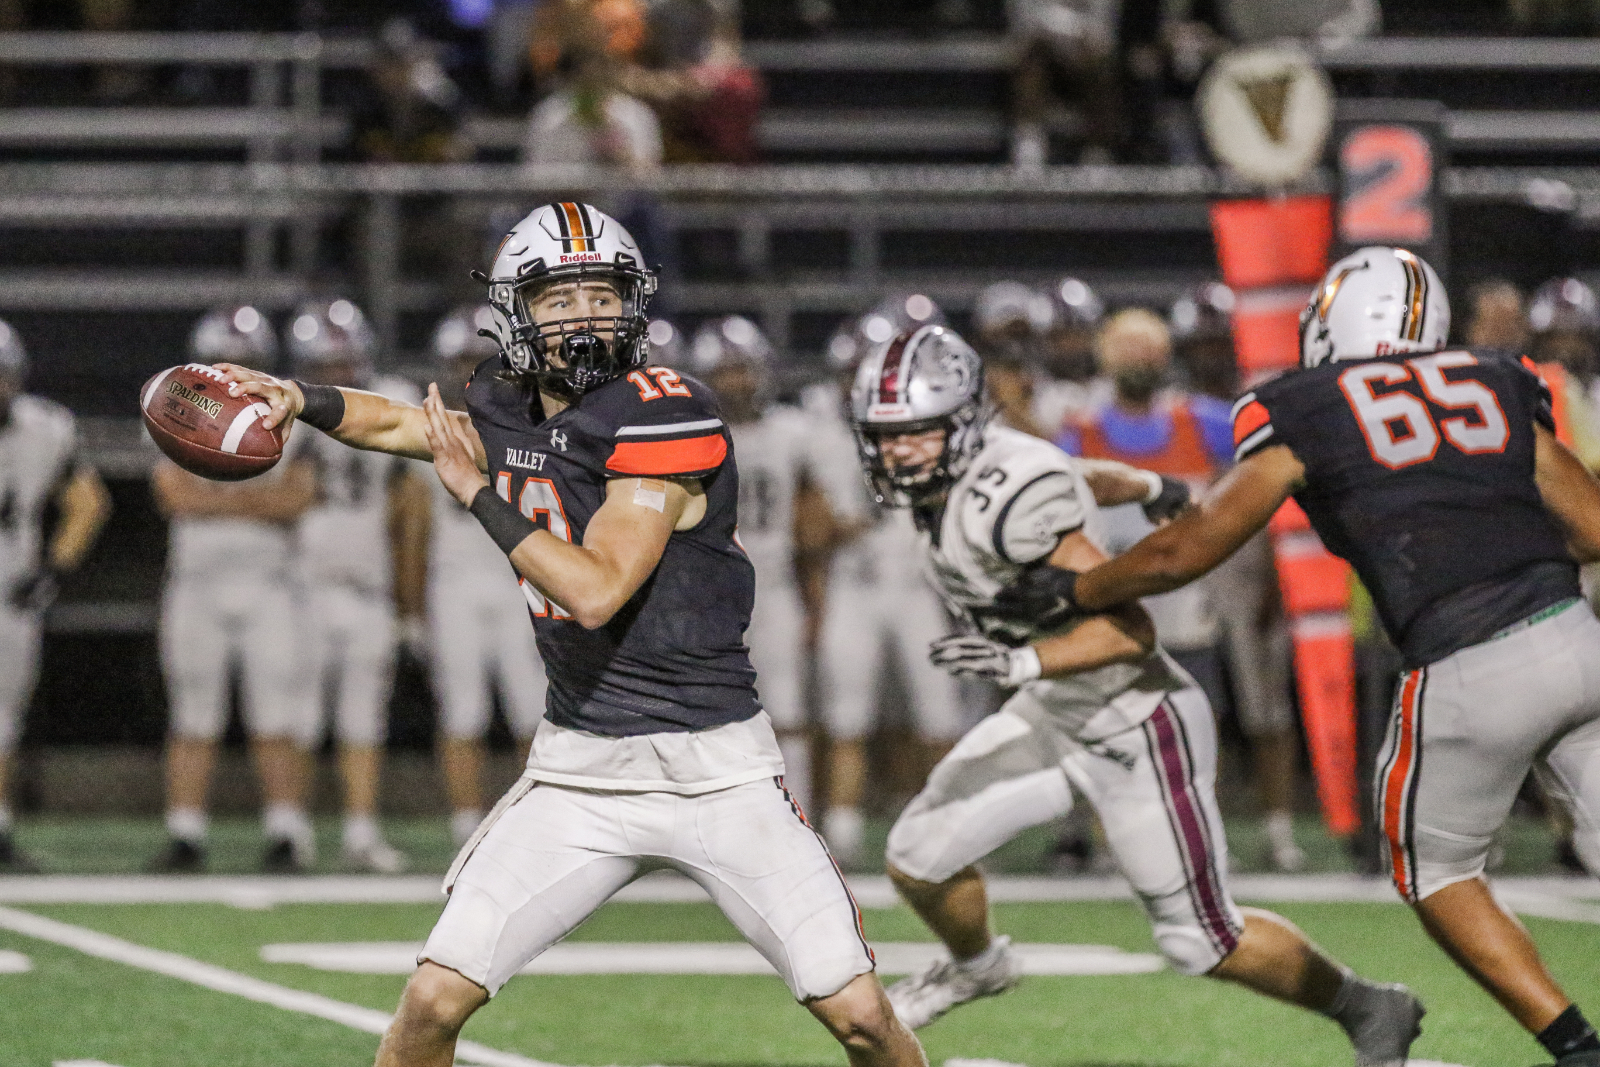 Playoff Football Friday: Valley vs. Urbandale